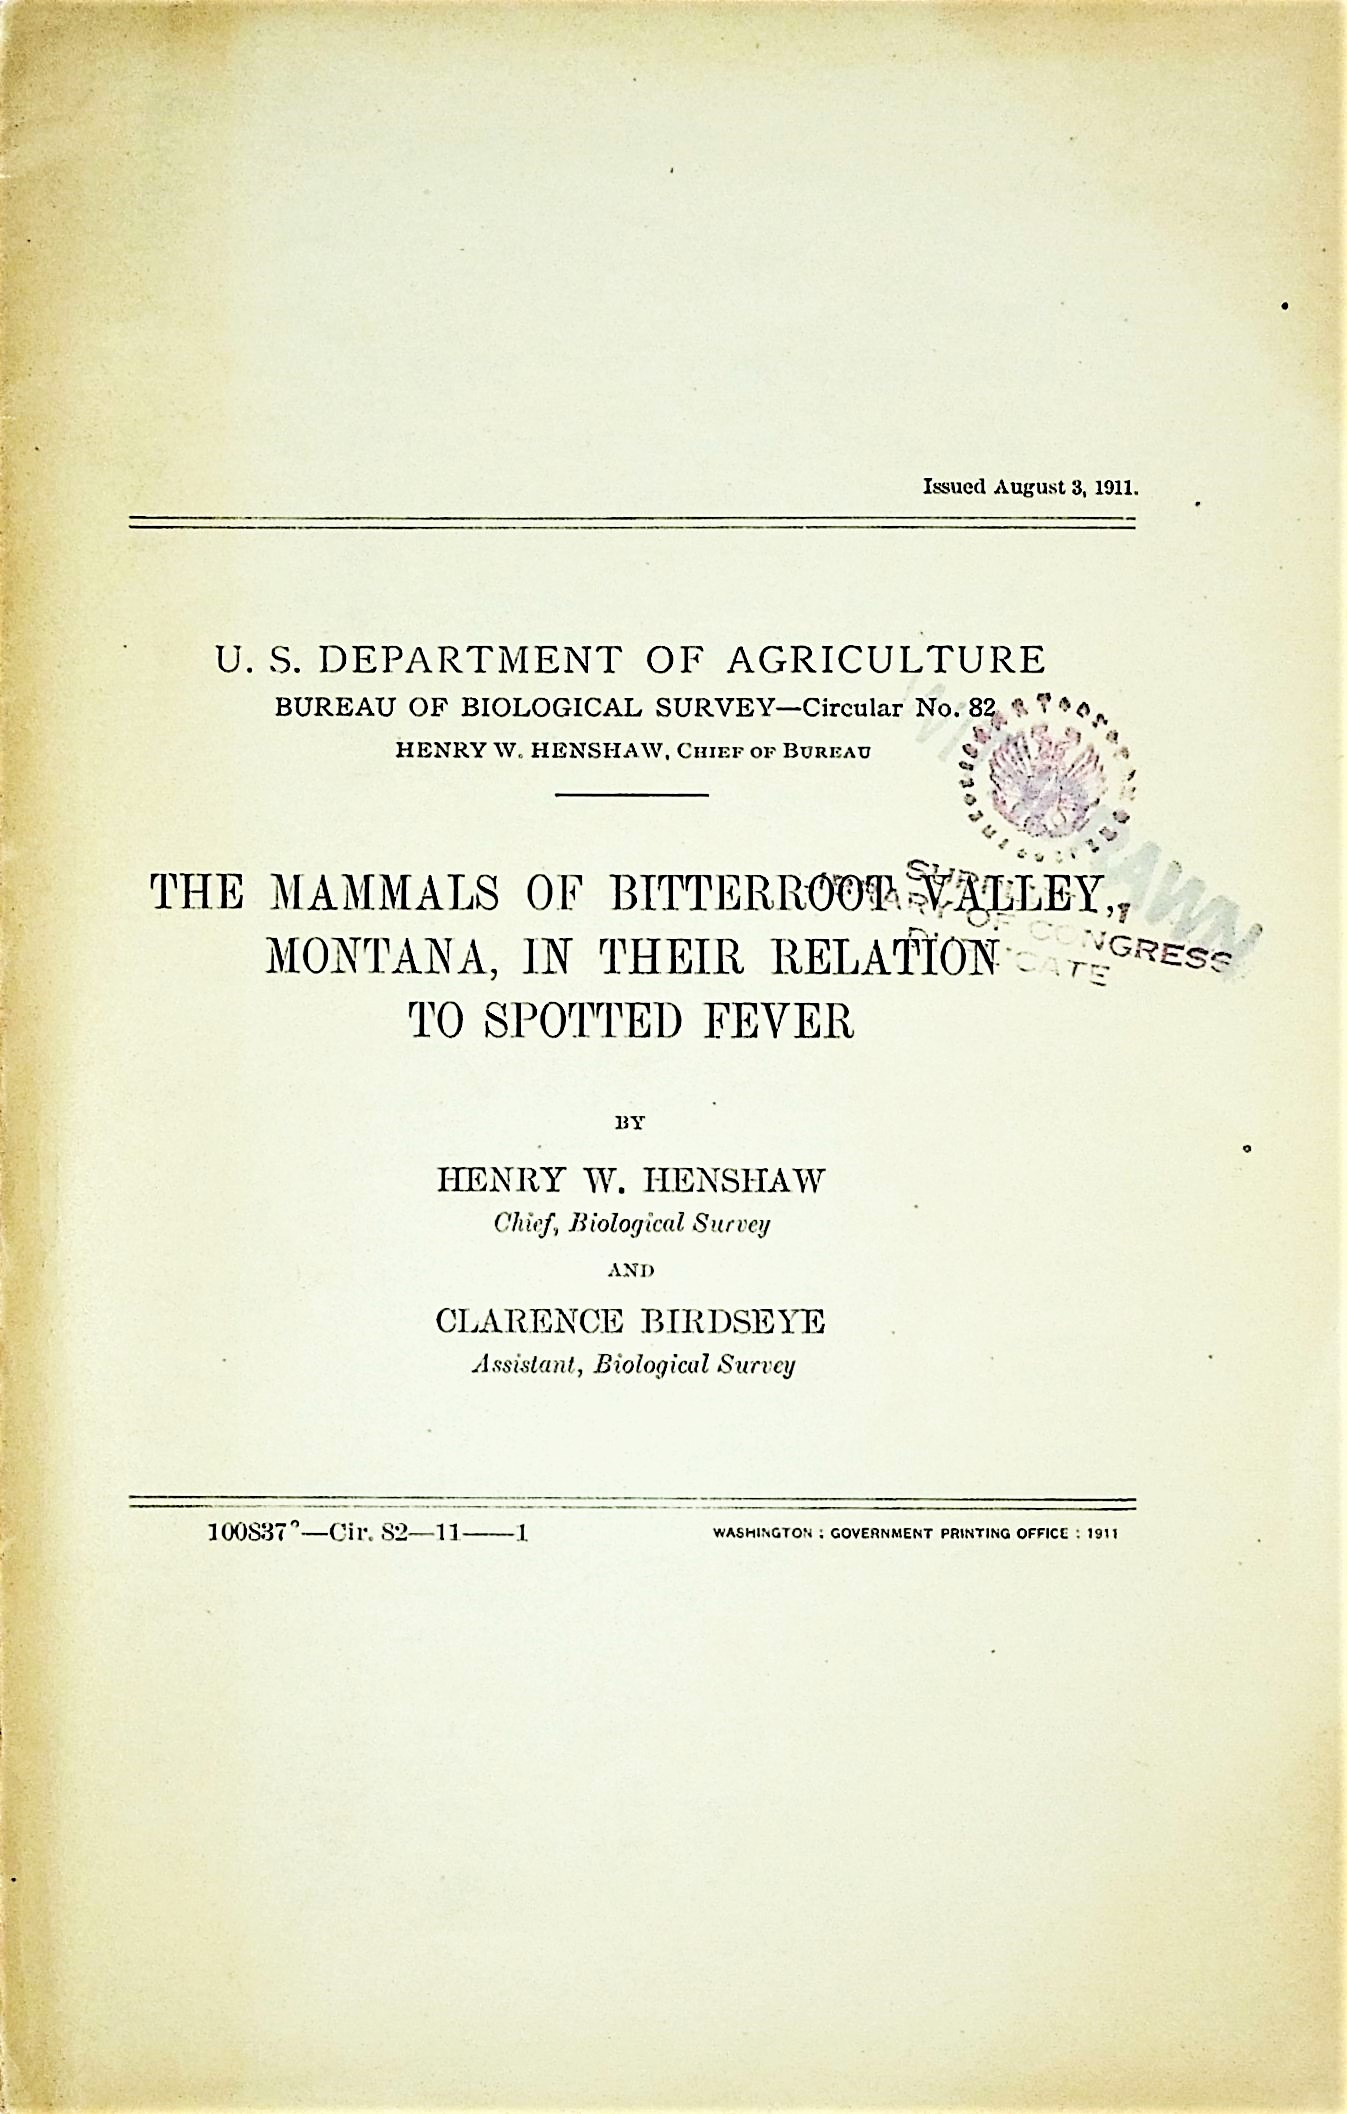 Image for The mammals of Bitterroot Valley, Montana, in their relation to spotted fever, Bureau of Biological Survey Circular No. 82